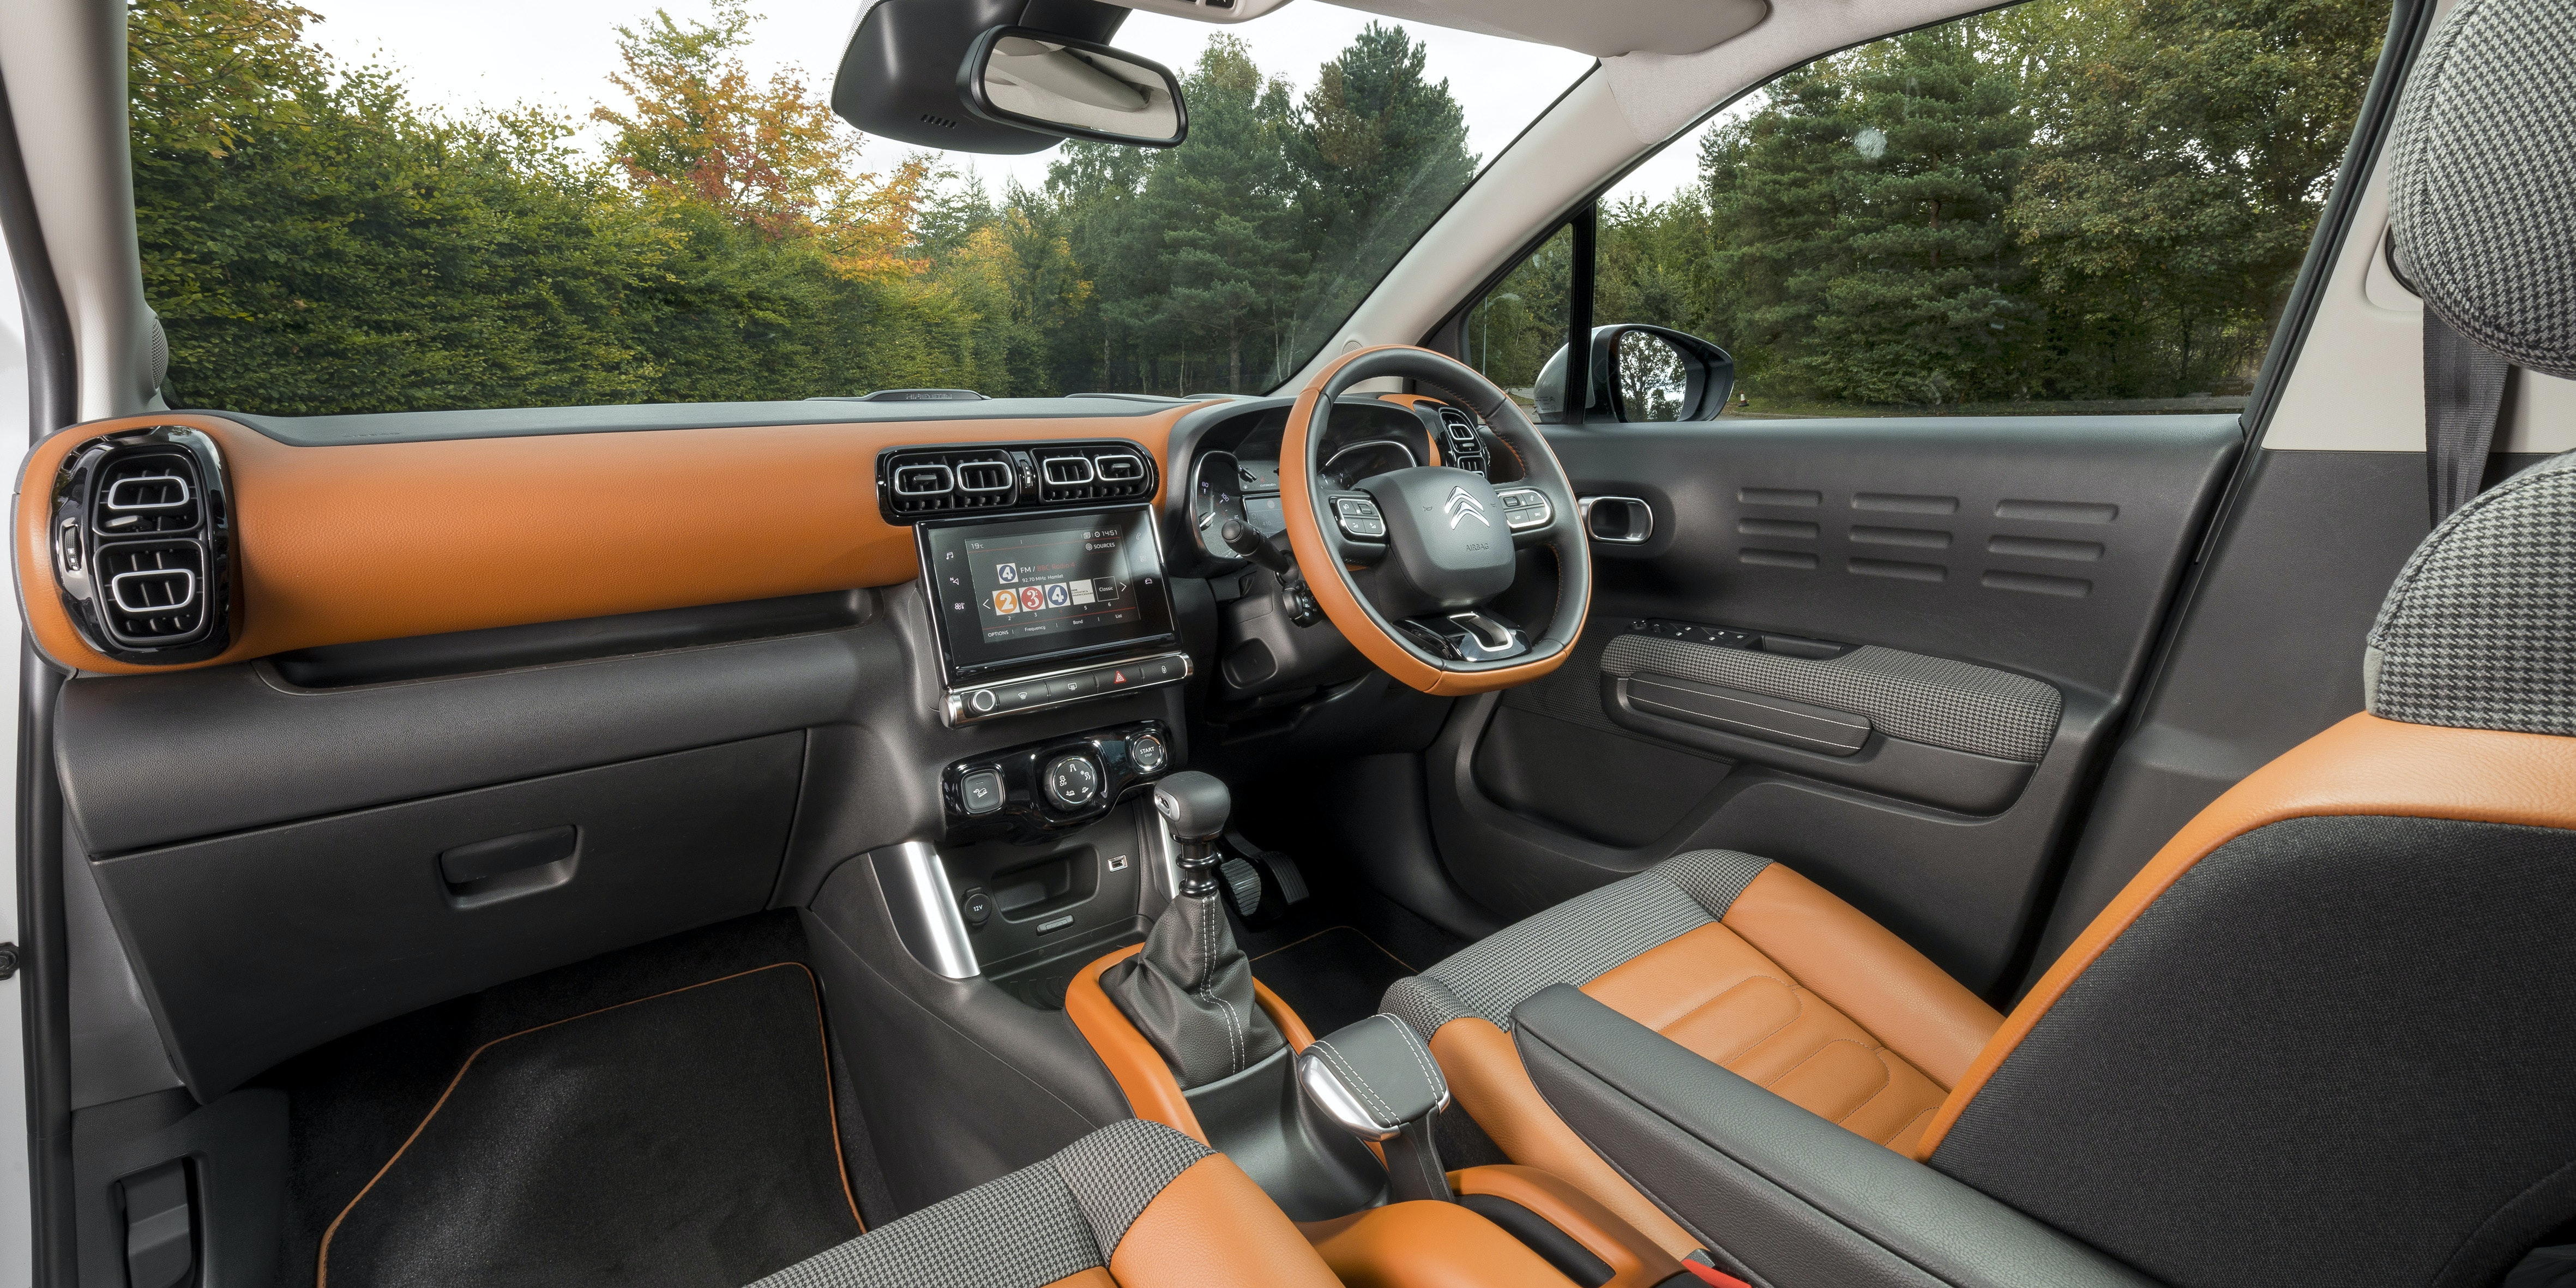 The Aircross' interior is smart looking and functional